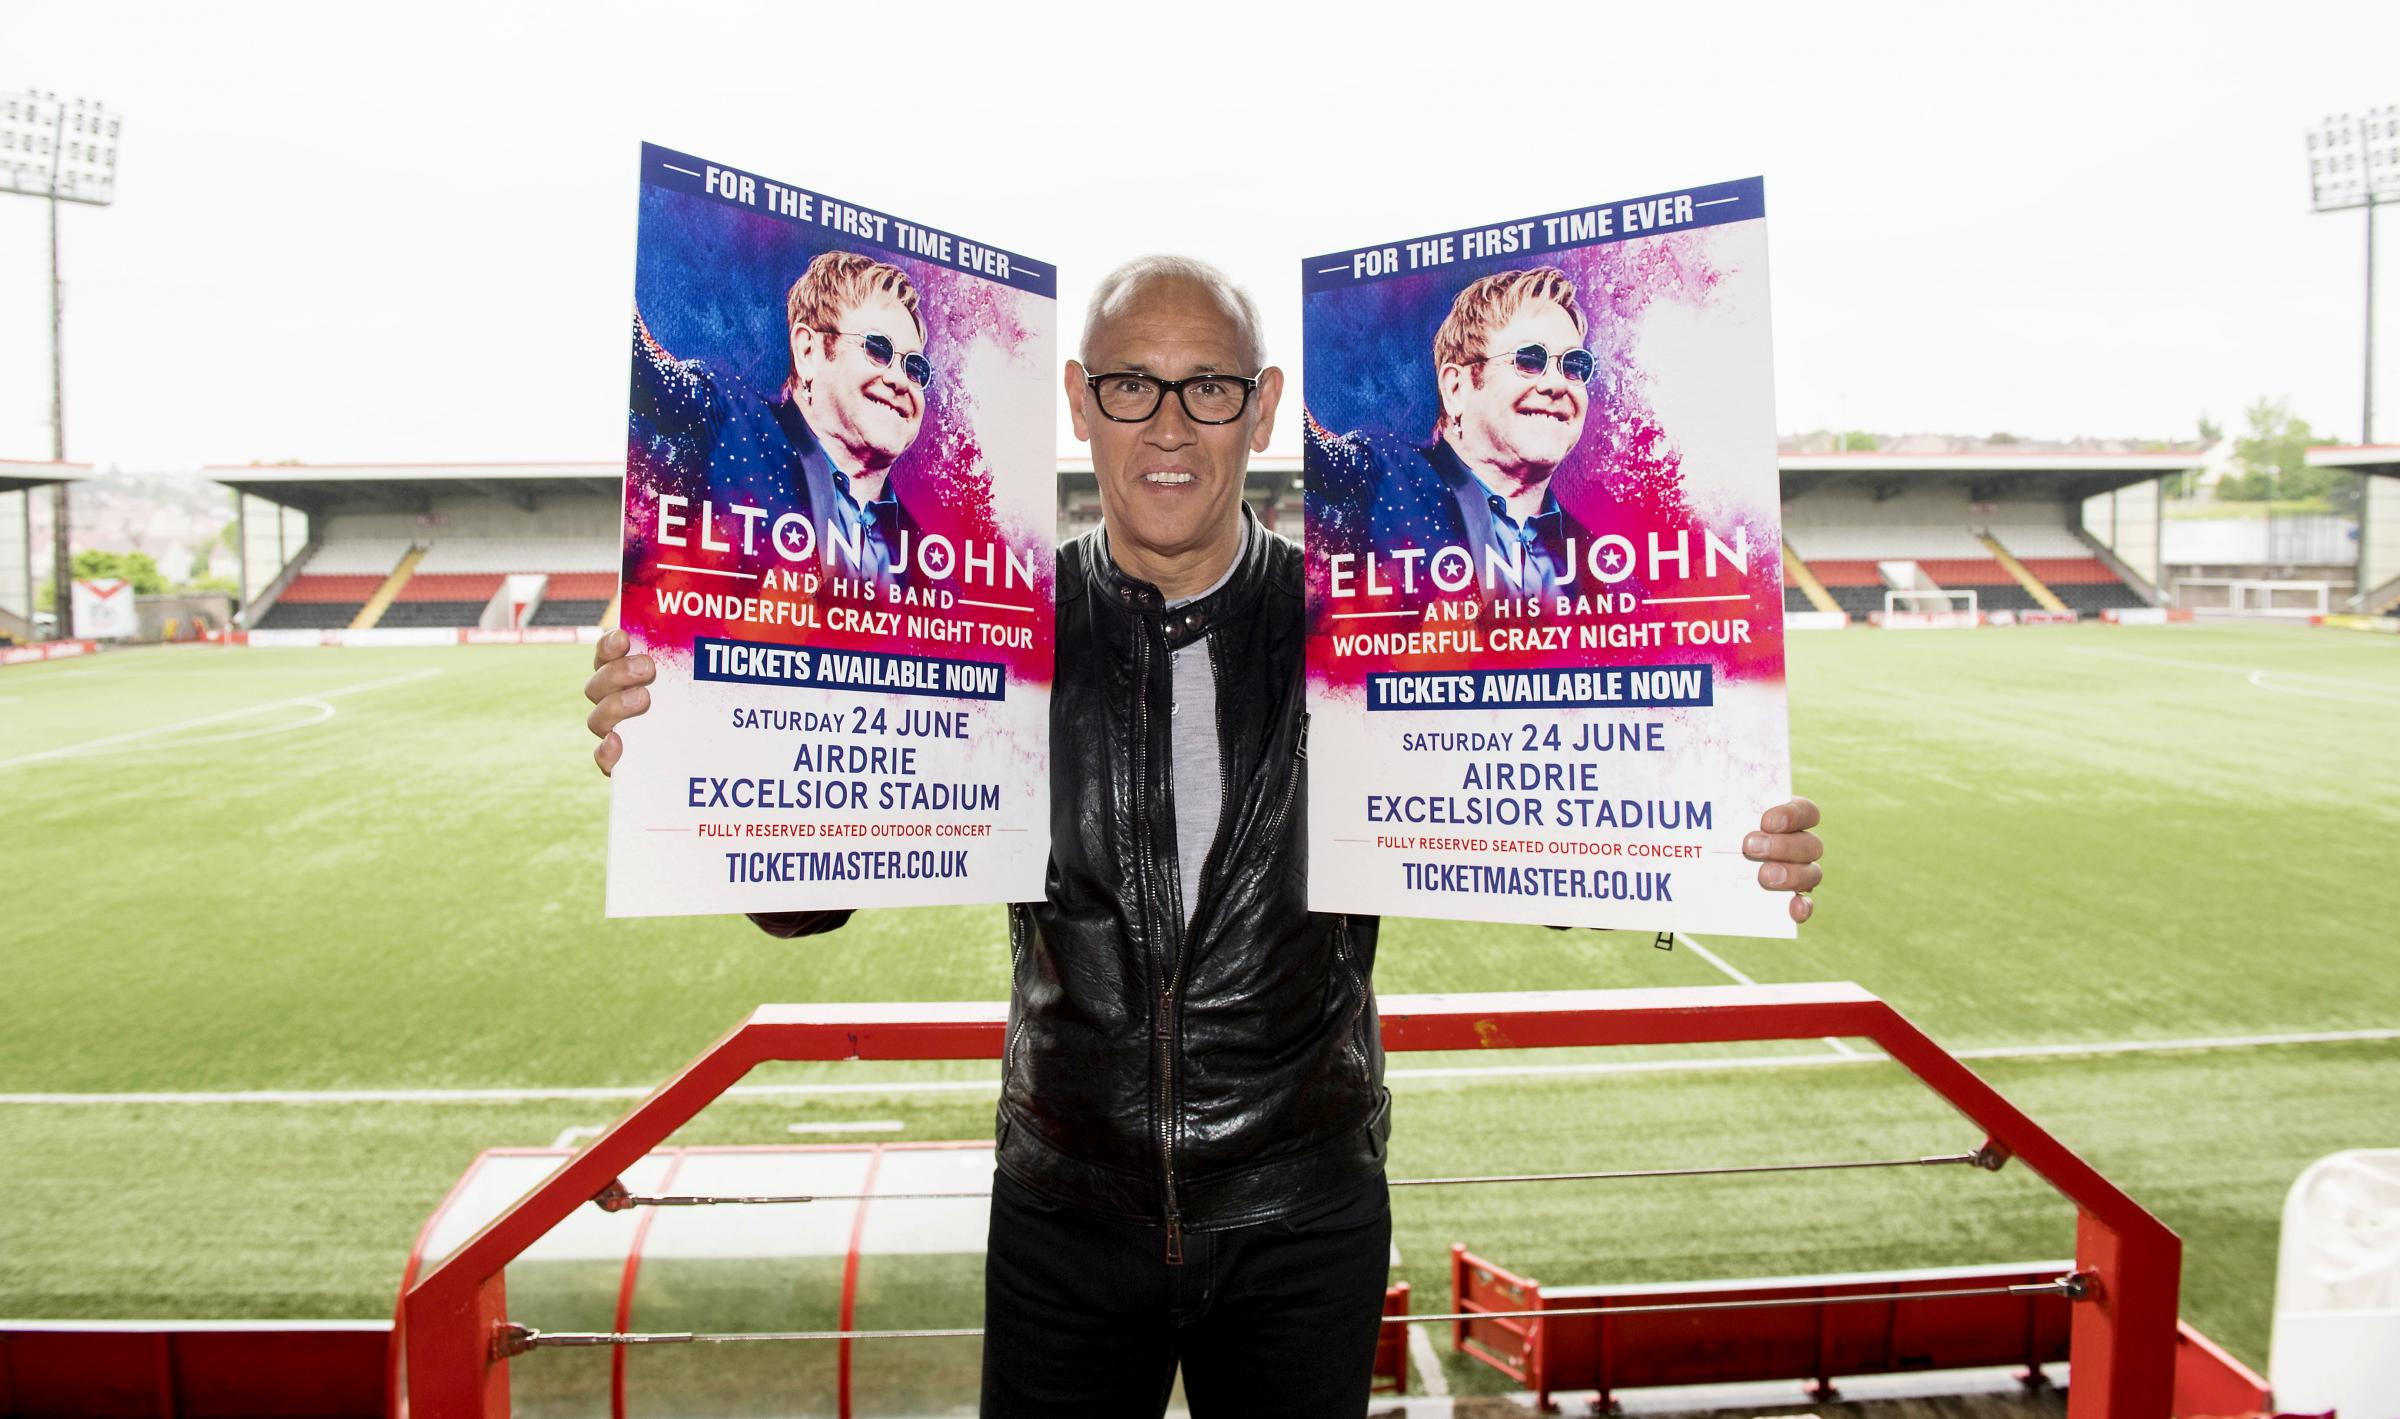 Former England international Mark Hateley promotes the Elton John's Wonderful Crazy Night tour and preview Scotland's upcoming World Cup qualifier against England..